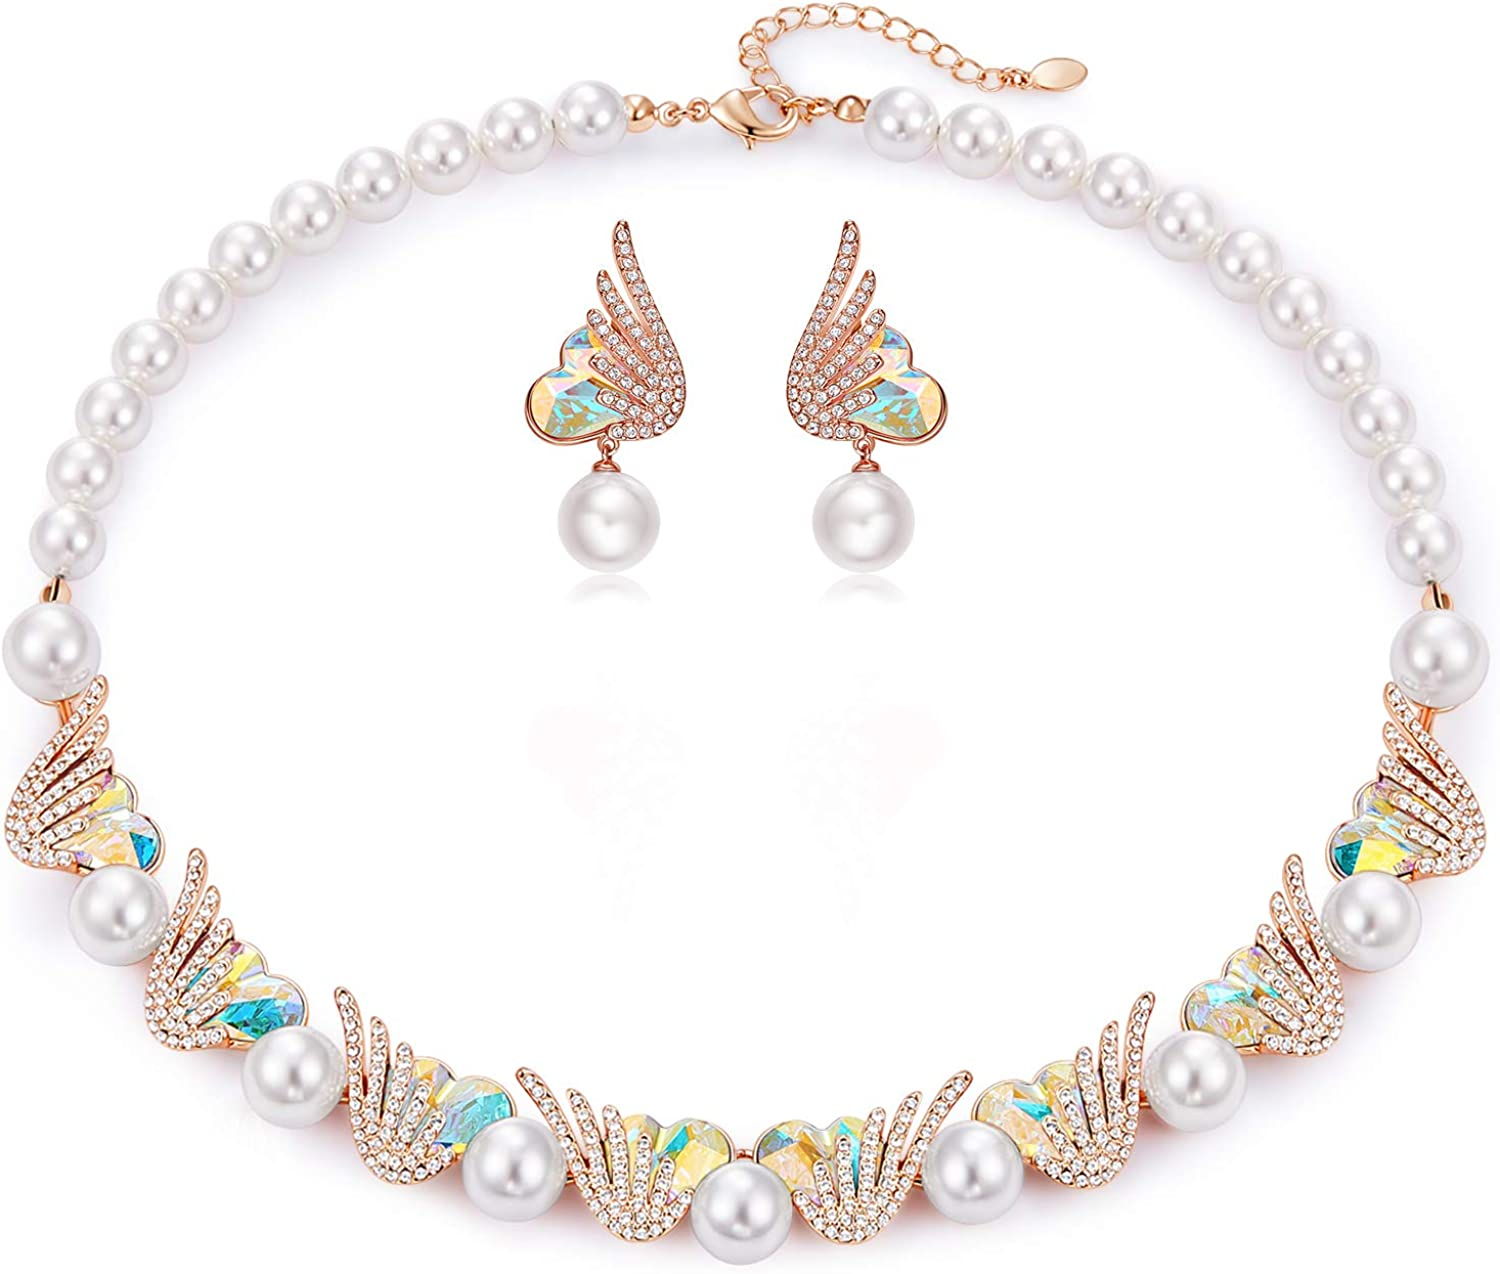 CDE Pearl Necklace and Earrings Set for Women Mother's Day Jewelry Gifts  Embellished with Crystals and Pearls Rose Gold Plated Christmas Jewelry  Gift ...